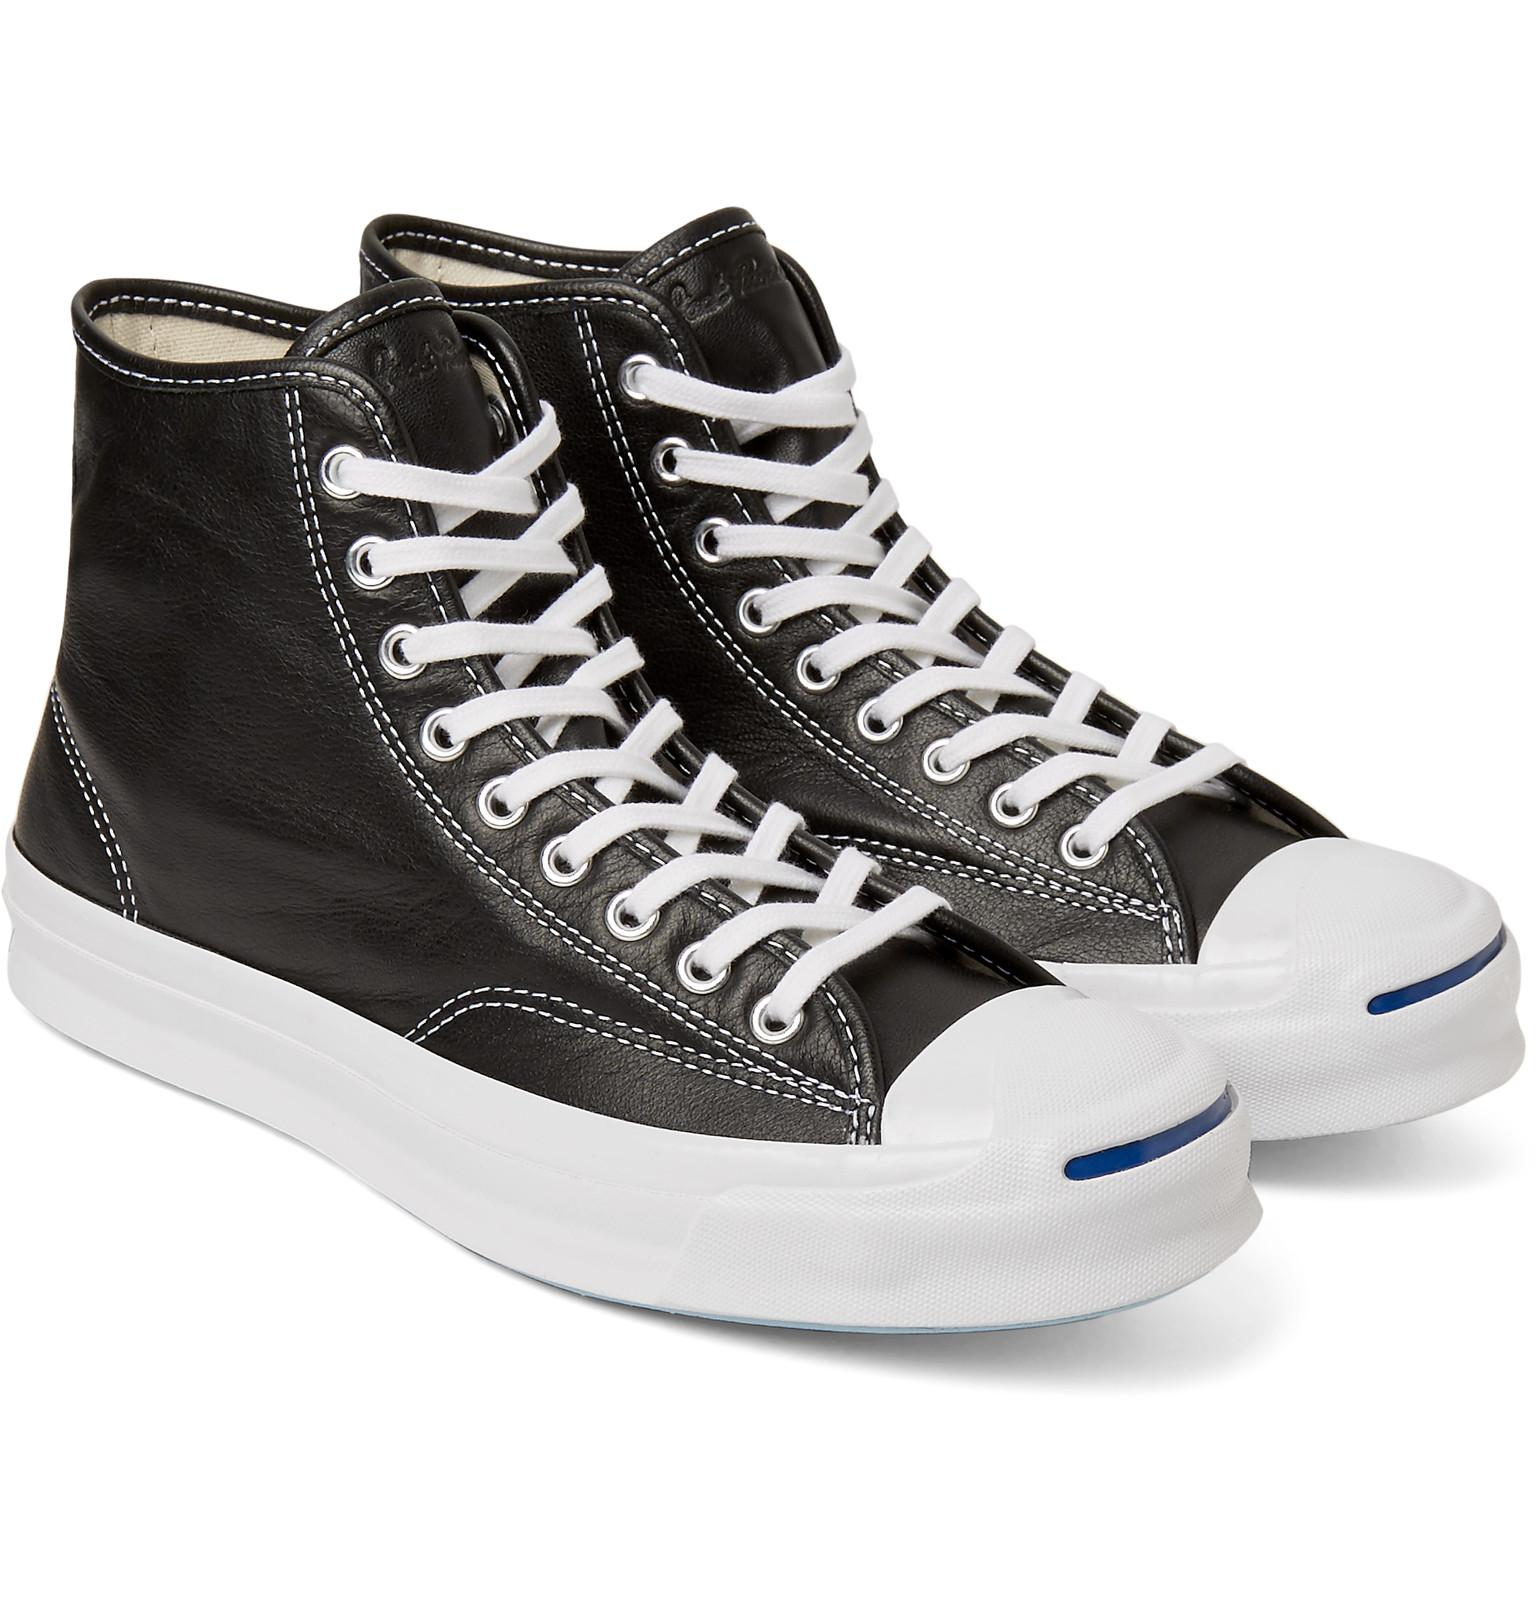 af5d635e0261b6 Lyst - Converse Jack Purcell Signature Leather High-top Sneakers in ...